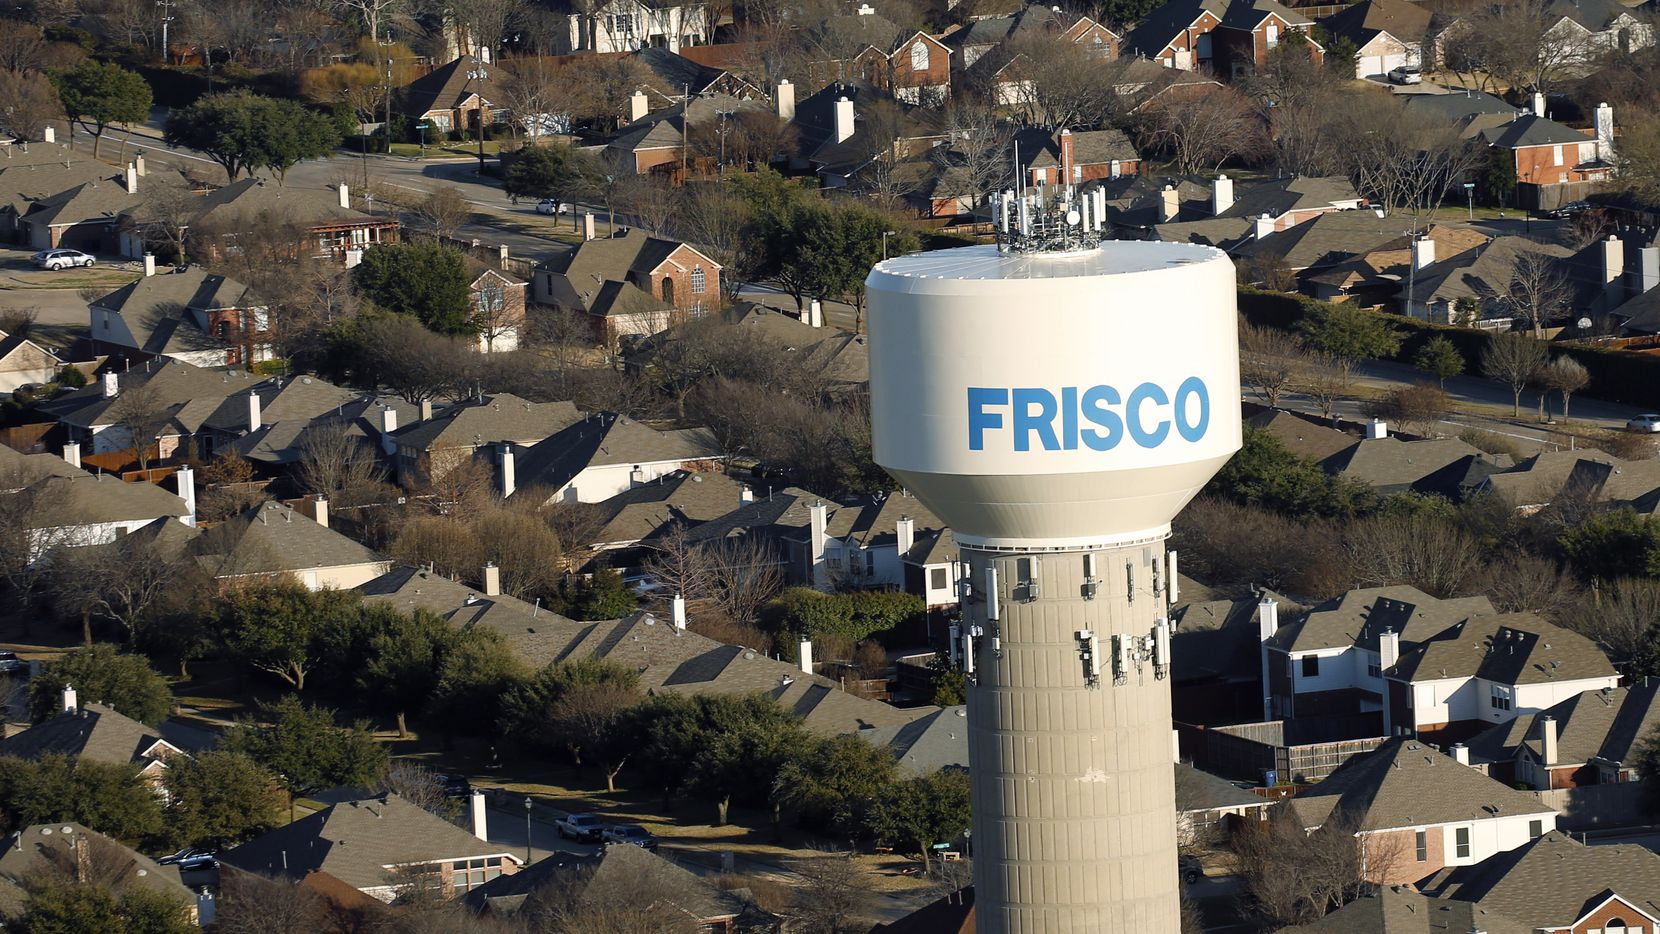 Frisco water tower and homes in Frisco, Texas on Friday, February 28, 2020.